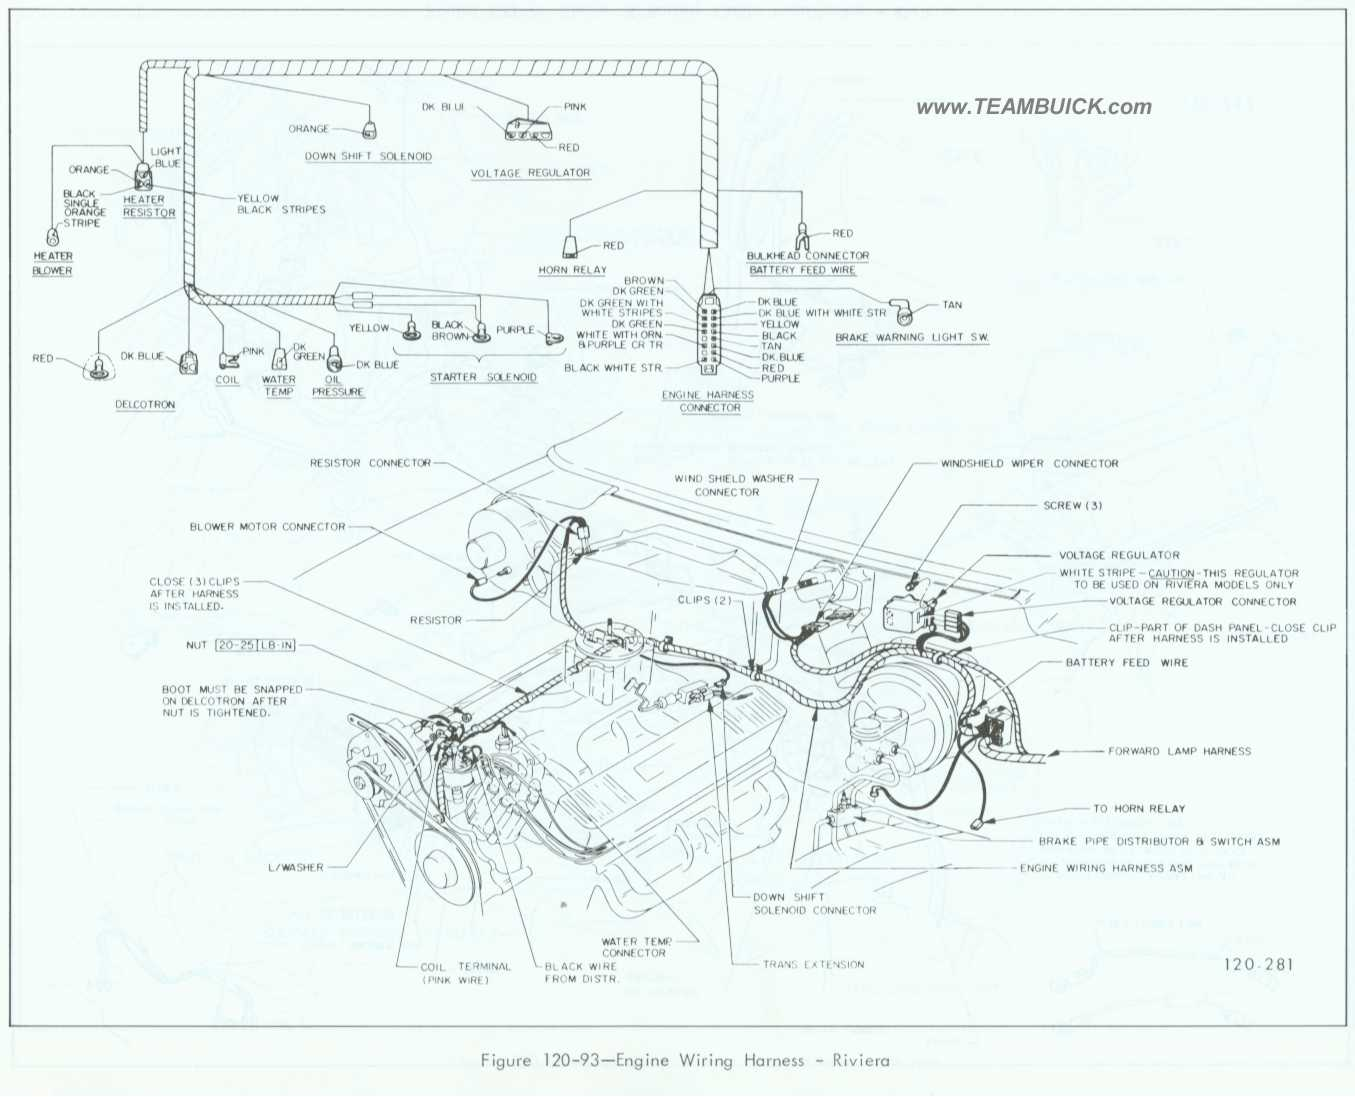 1967 buick riviera engine wiring harness rh teambuick com 1967 vw beetle  engine wiring diagram 1967 chevelle engine wiring diagram